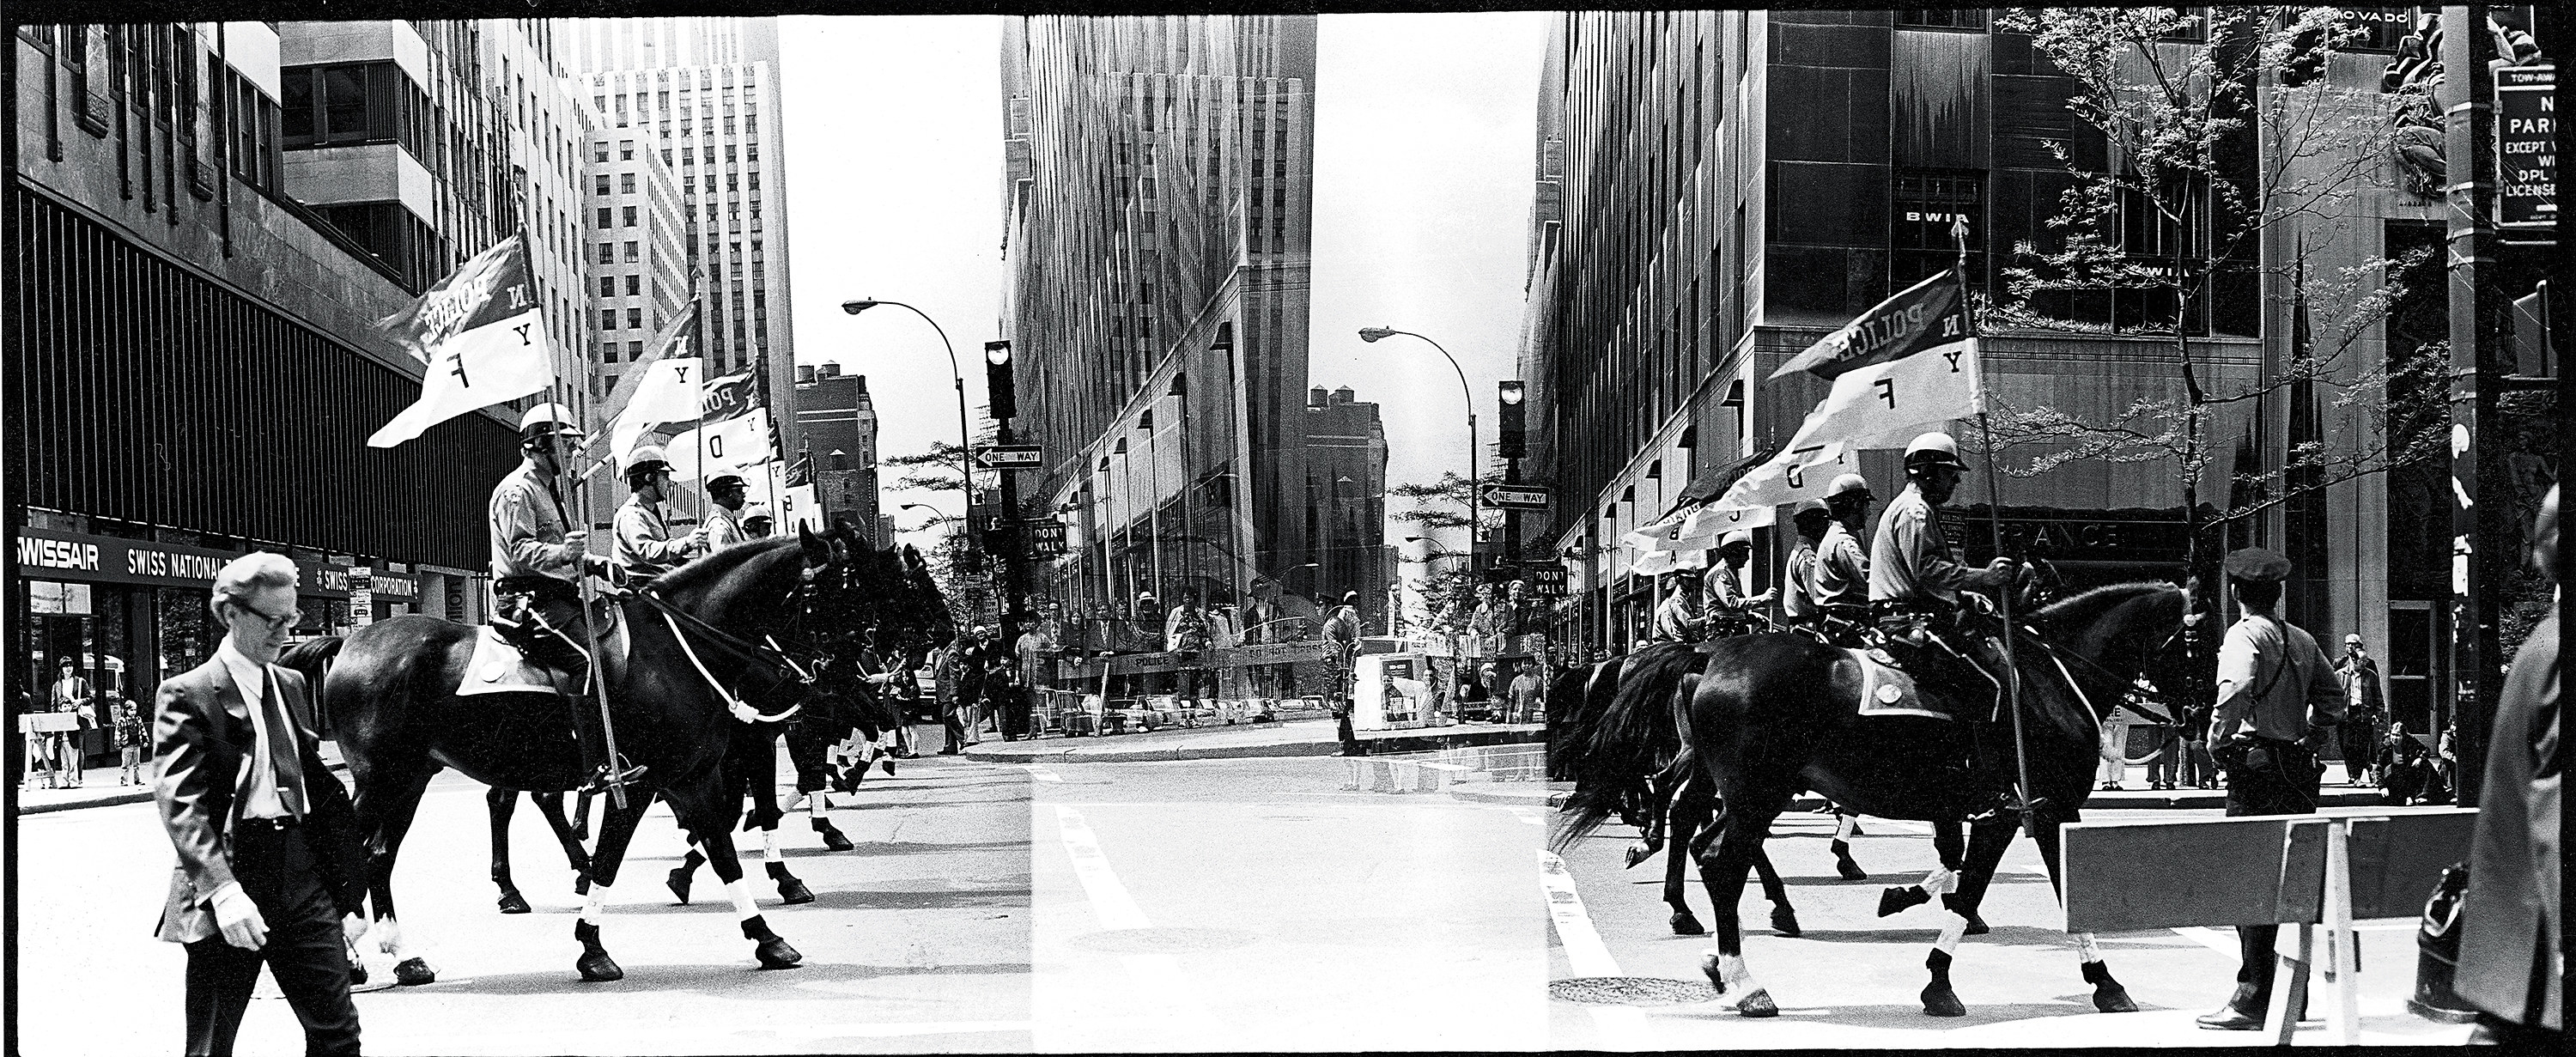 Mounted police walking down a street in New York